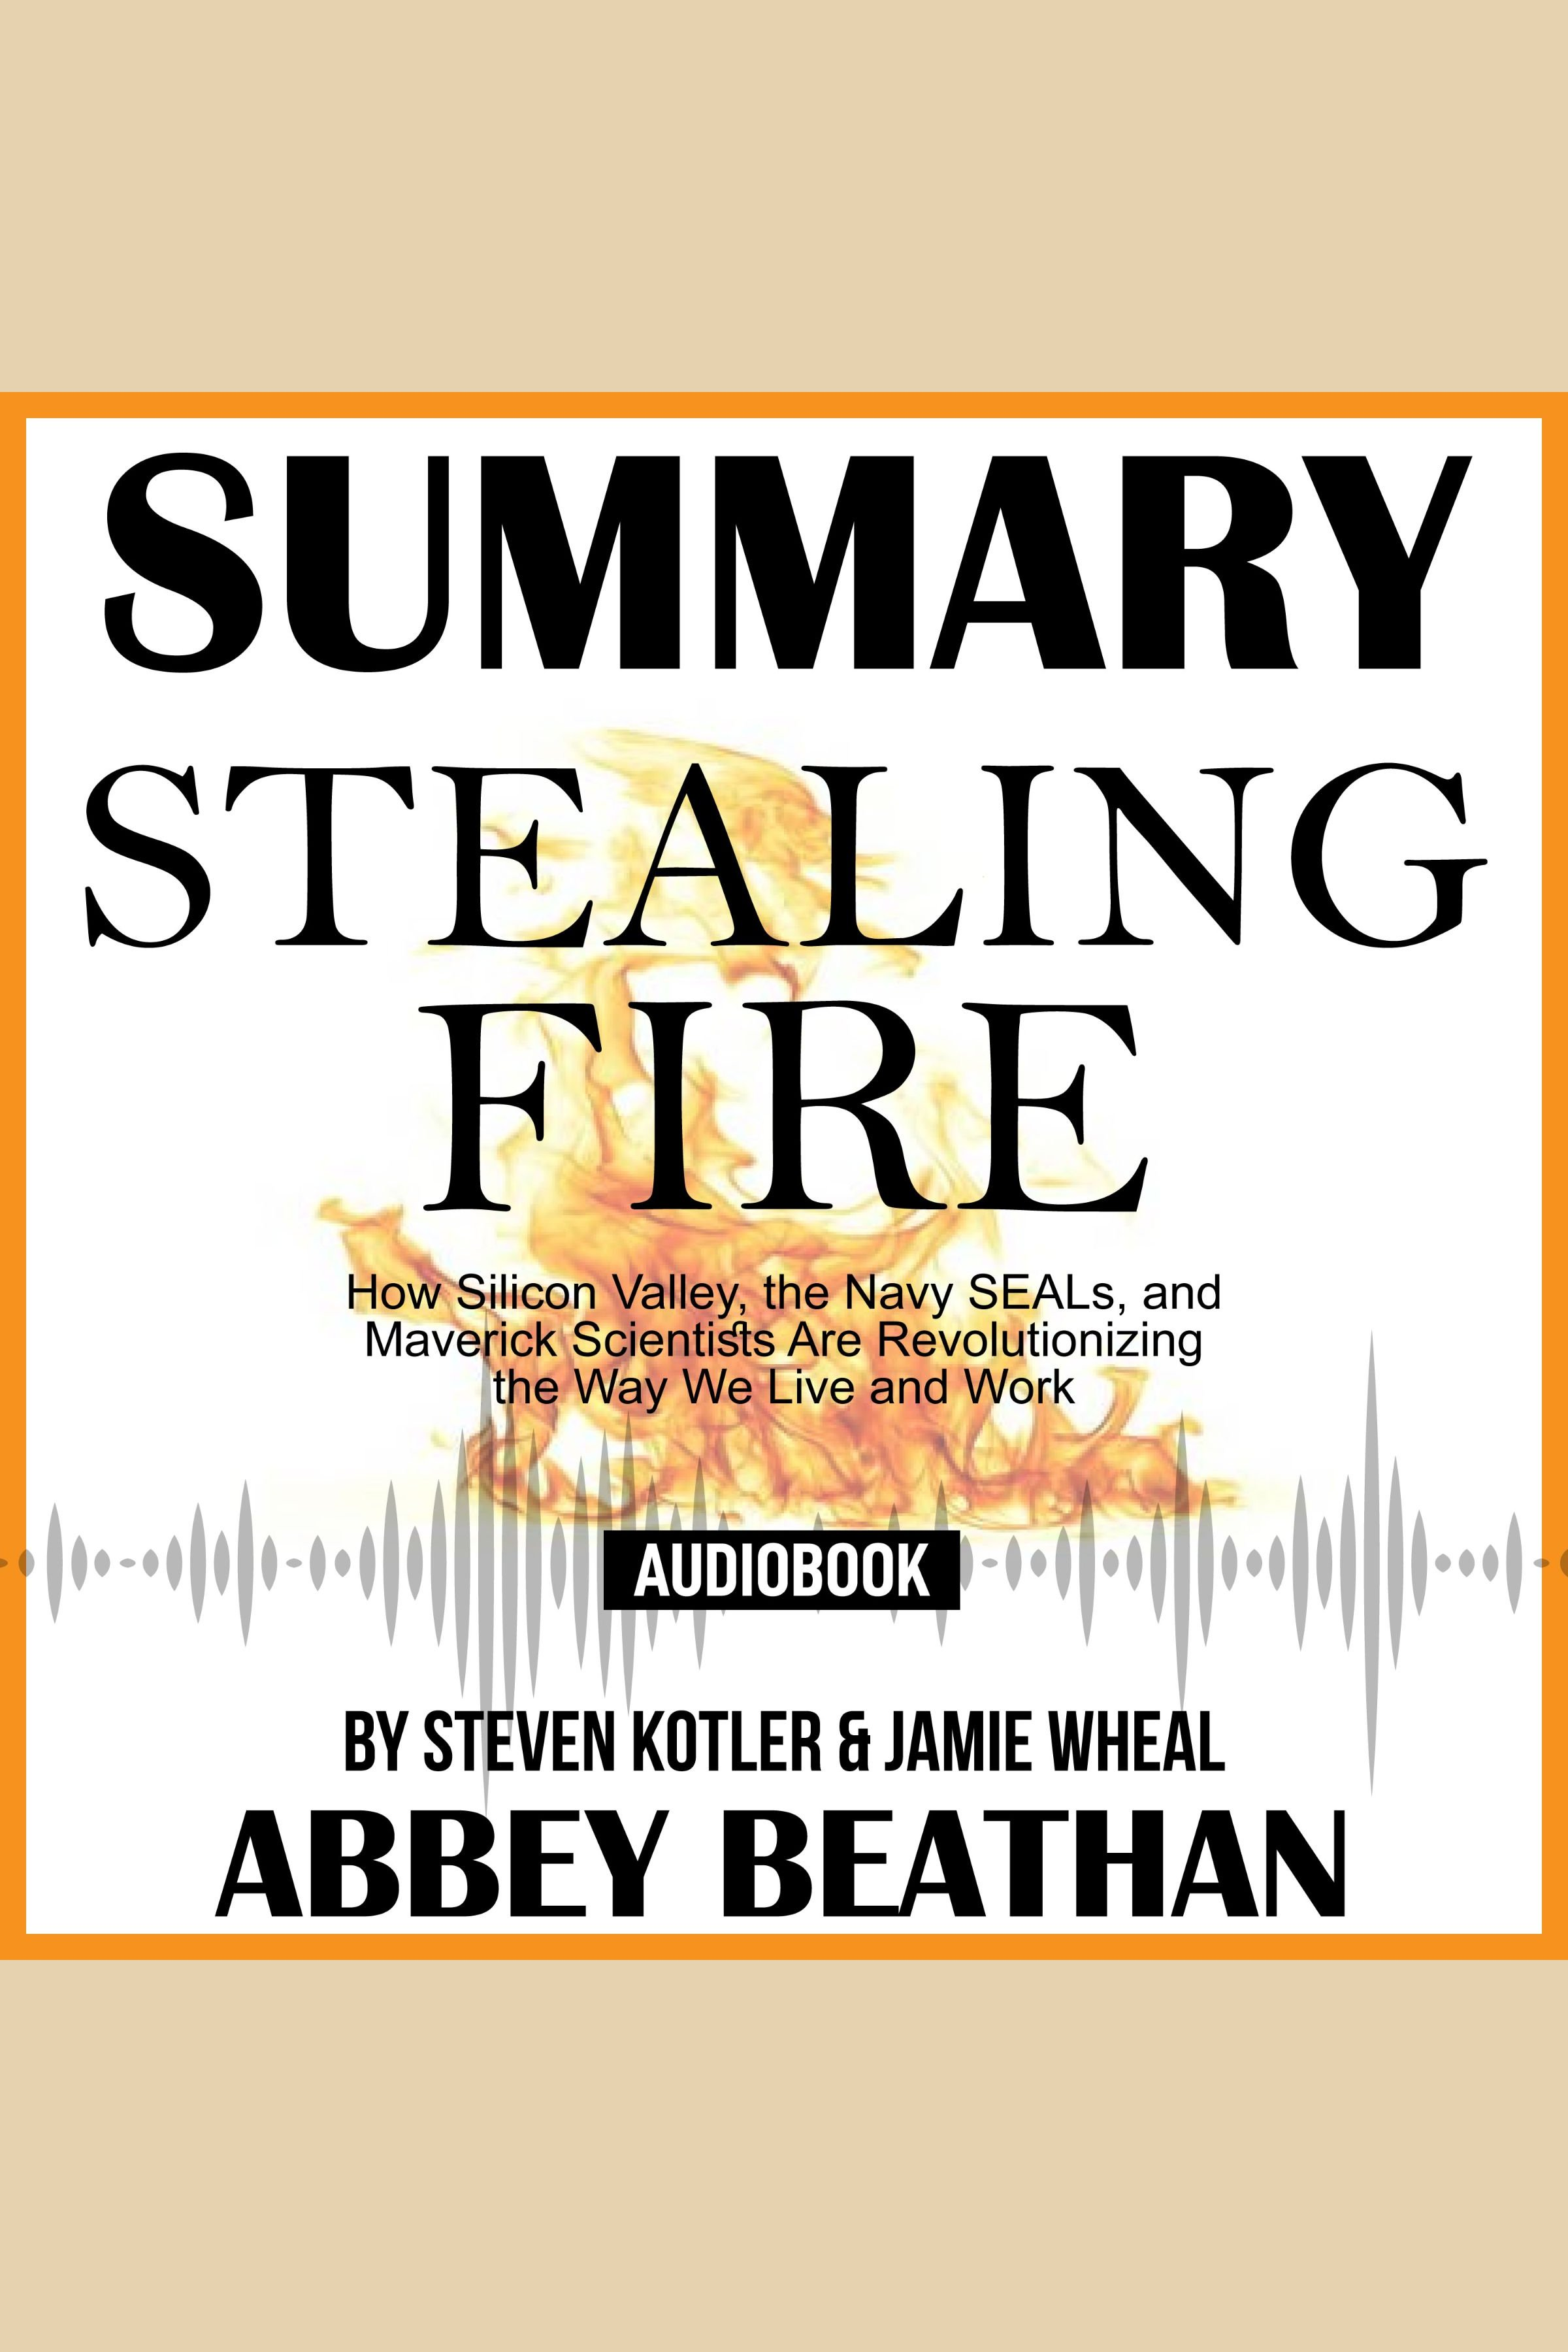 Esta es la portada del audiolibro Summary of Stealing Fire: How Silicon Valley, the Navy SEALs, and Maverick Scientists Are Revolutionizing the Way We Live and Work by Steven Kotler & Jamie Wheal